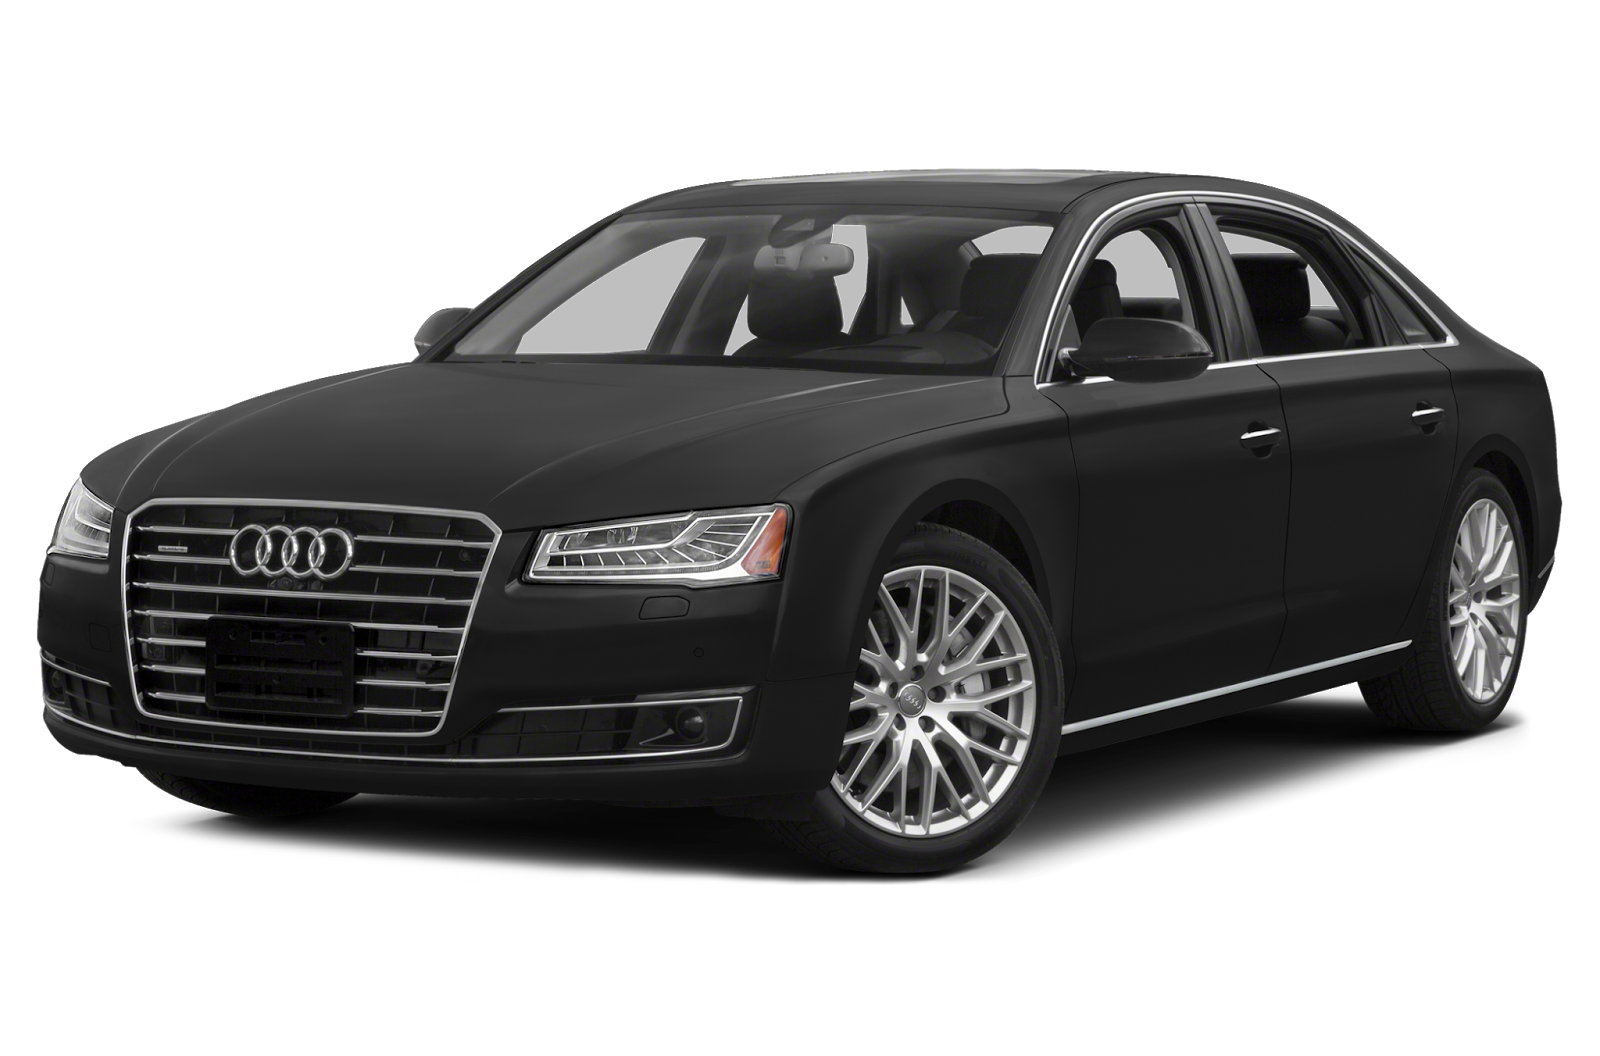 2015 Audi A8 High Resolution Pictures